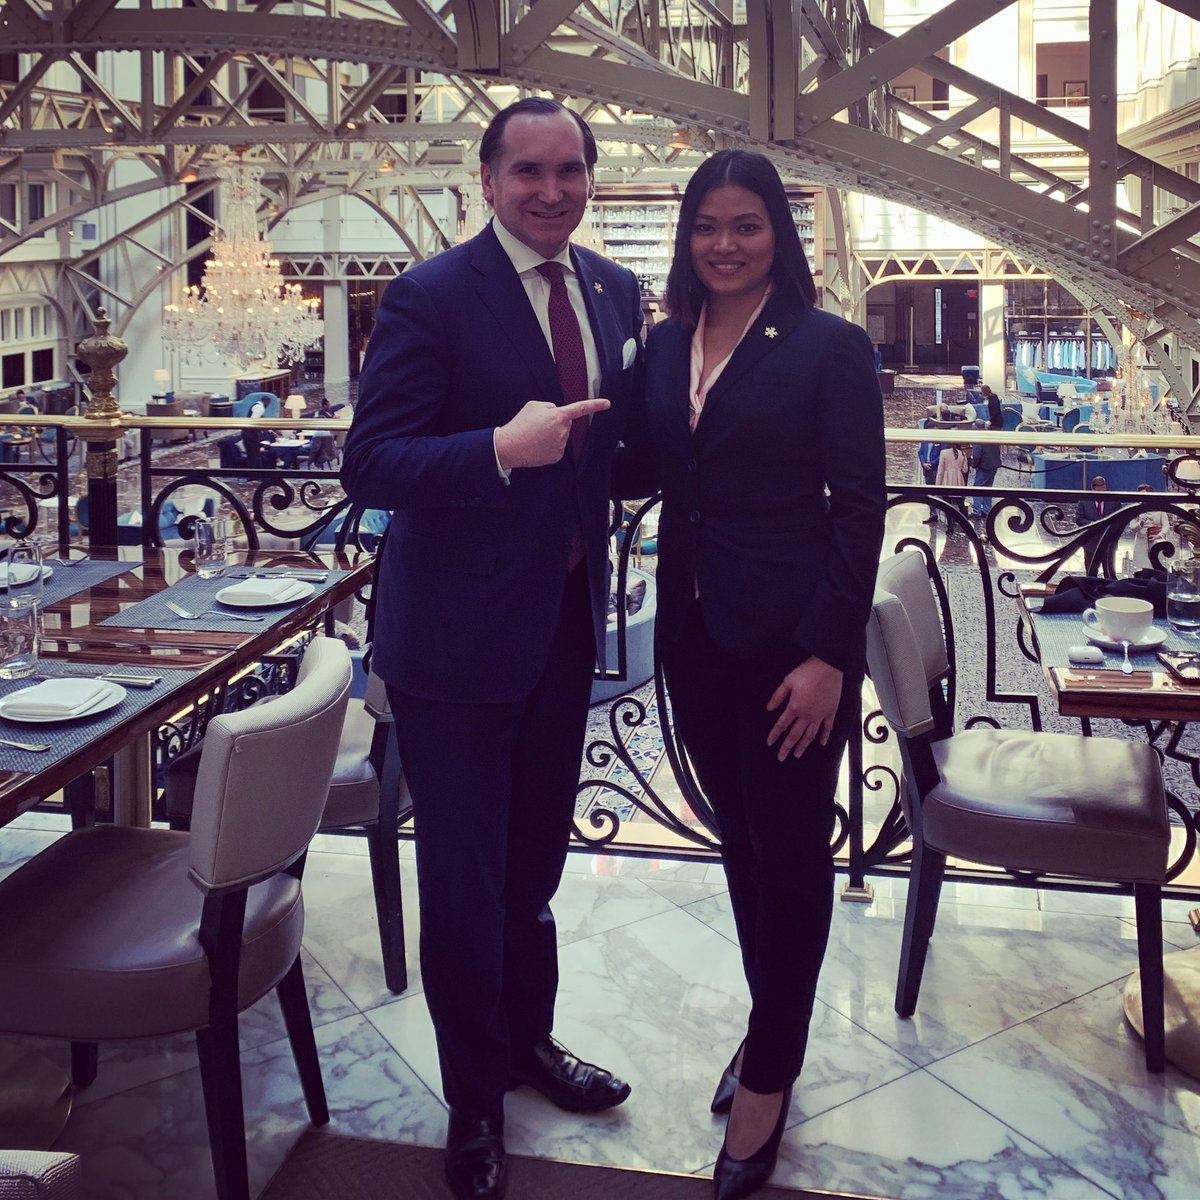 Great lunch with Sasha today...She and her team have done a fantastic job at our @TrumpDC @TrumpStore over the last 3 years...Keep up the great work and THANK YOU!!! #bestteam #trumpteam #Trump #shopping #store #success #neversettle #WashingtonDC #thankyoupic.twitter.com/YhtpOWHyFH – at Trump® International Hotel Washington, D.C.